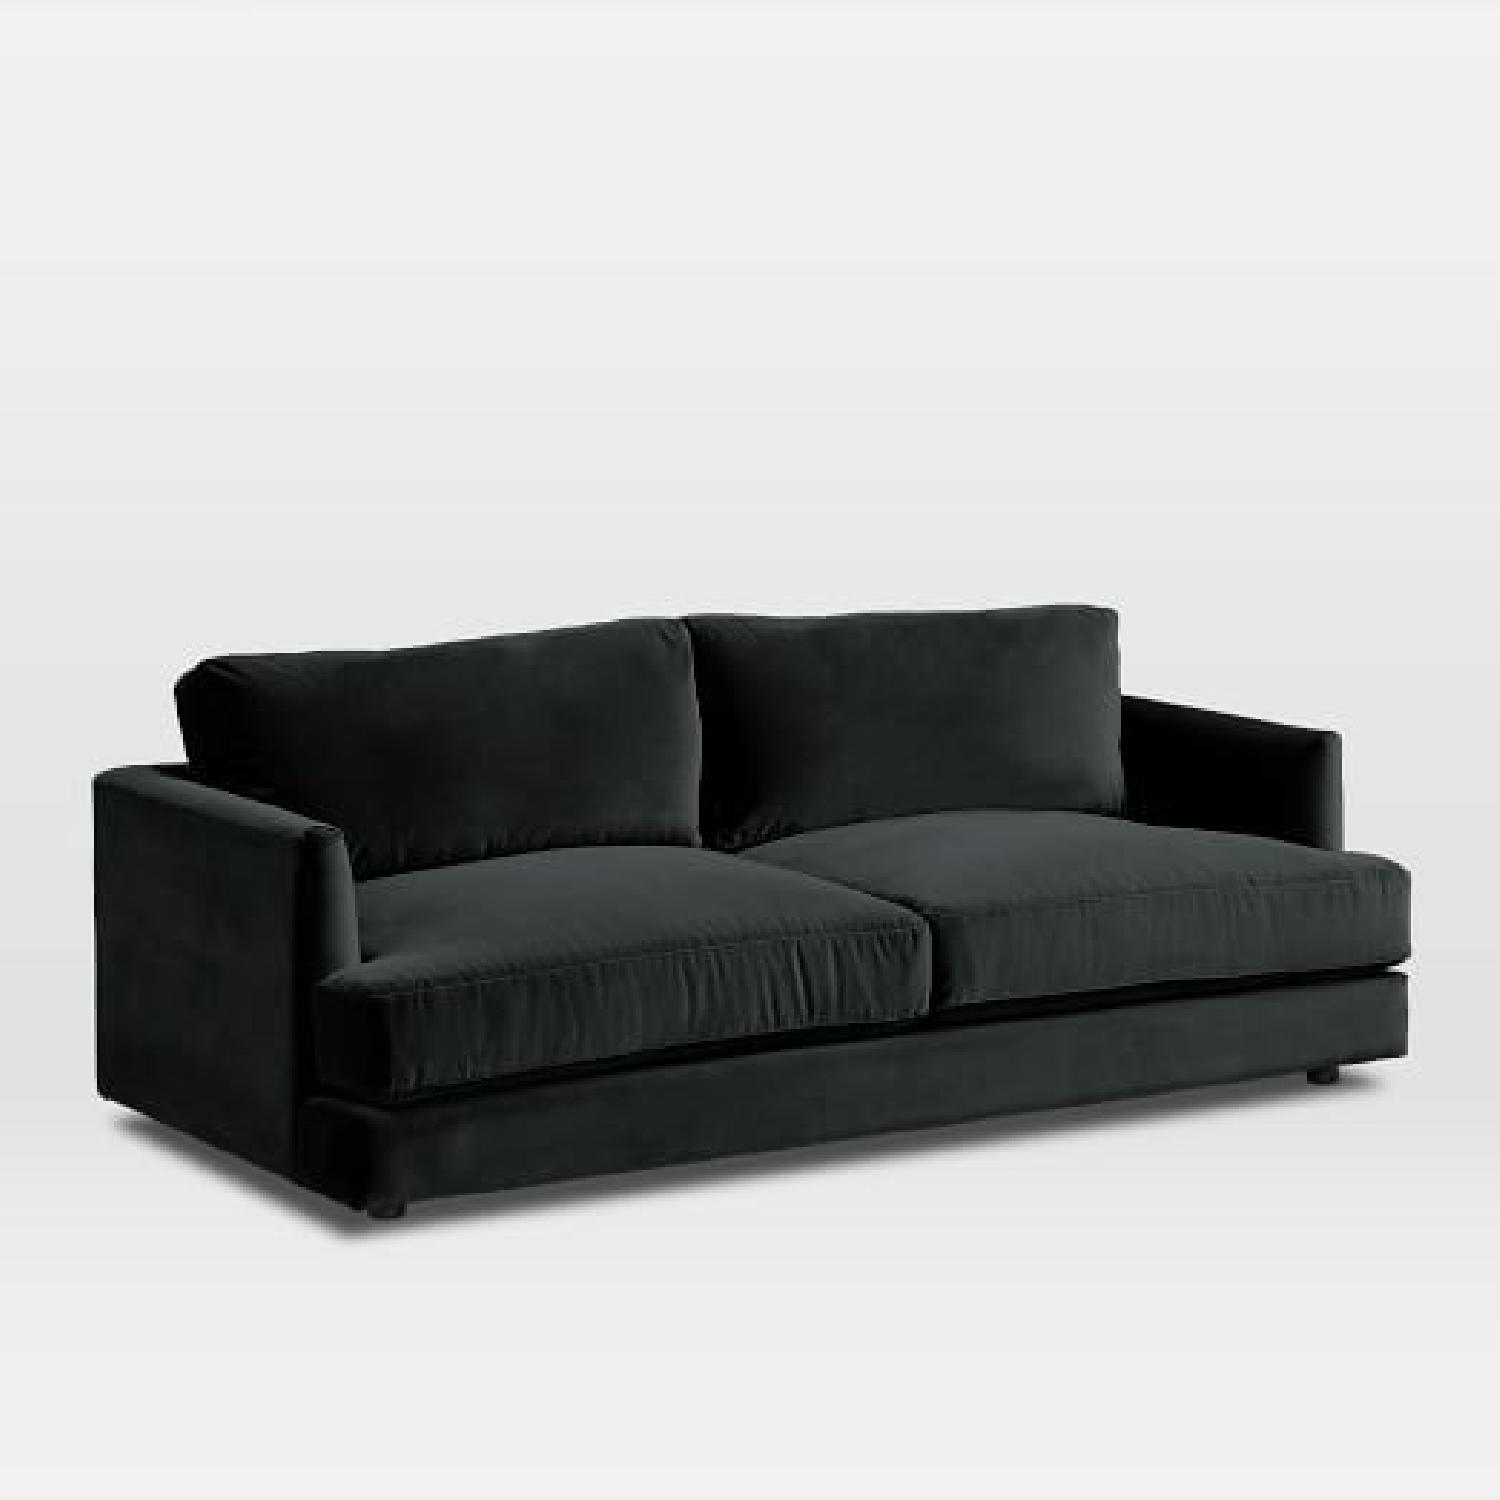 West Elm Haven Sofa in Iron Astor Velvet - image-7